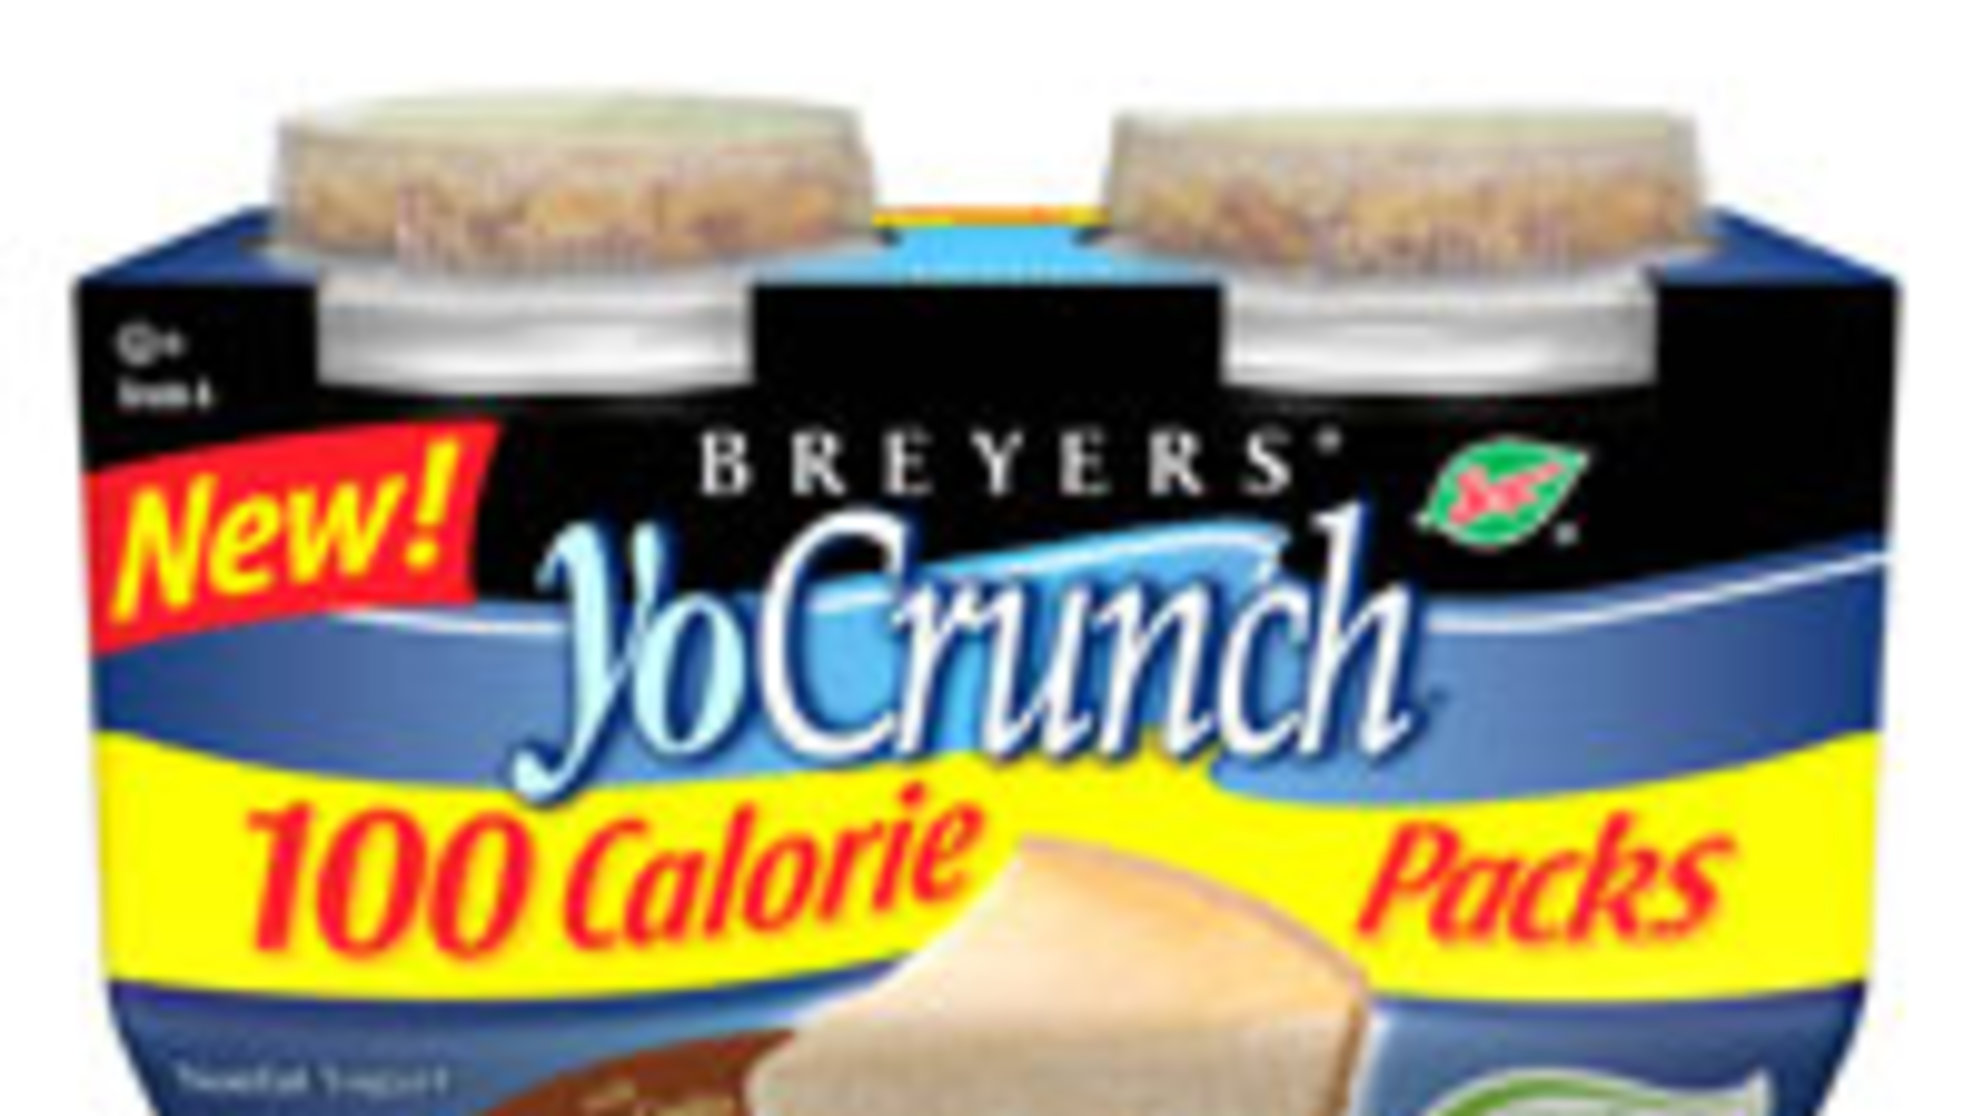 Foodie Friday: Breyers YoCrunch 100 Calorie Packs